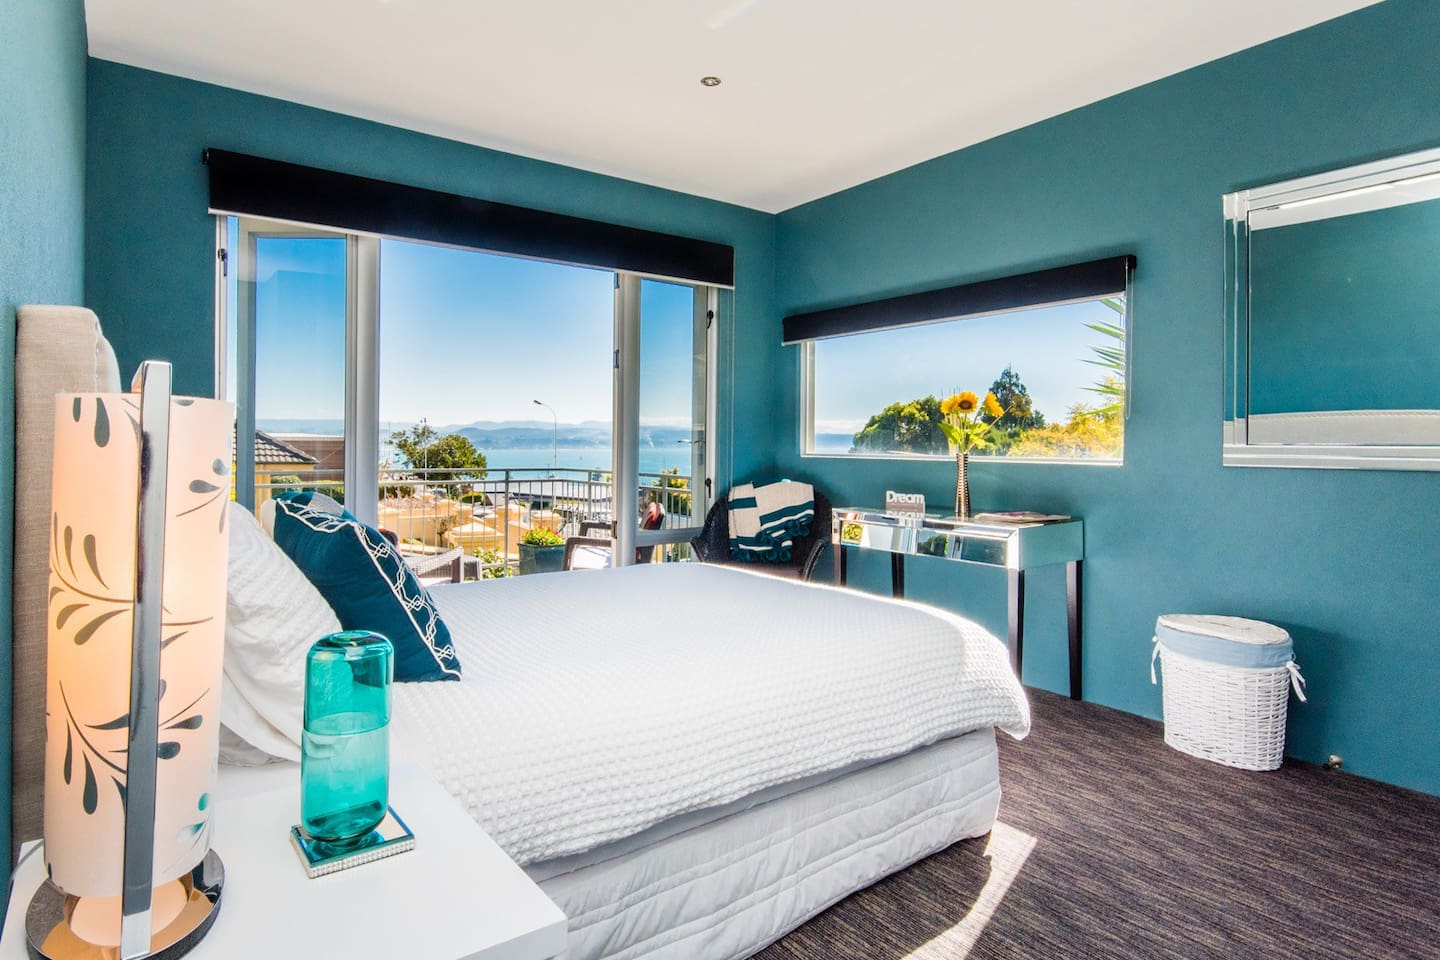 Bedroom One - fantastic views and sunshine. And doors open out to your deck.